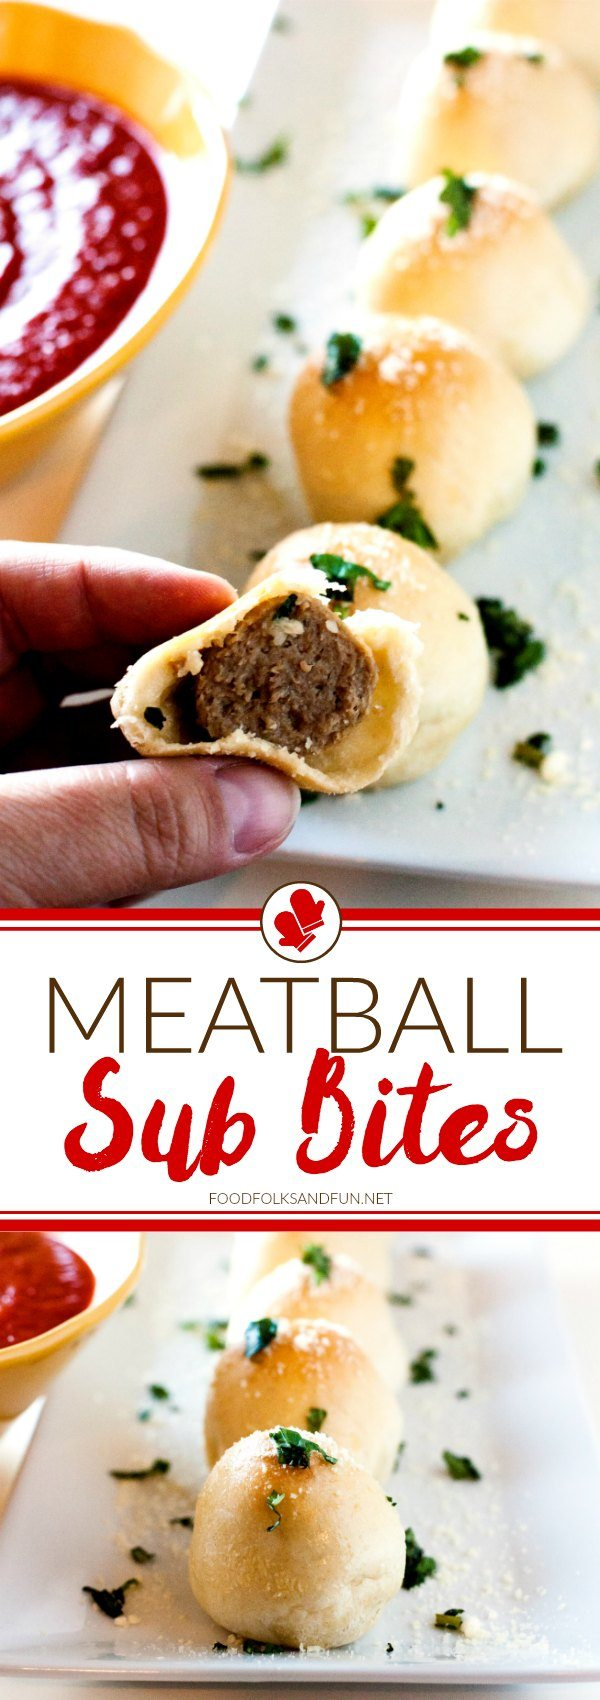 Meatball Sub Bites picture collage for Pinterest.